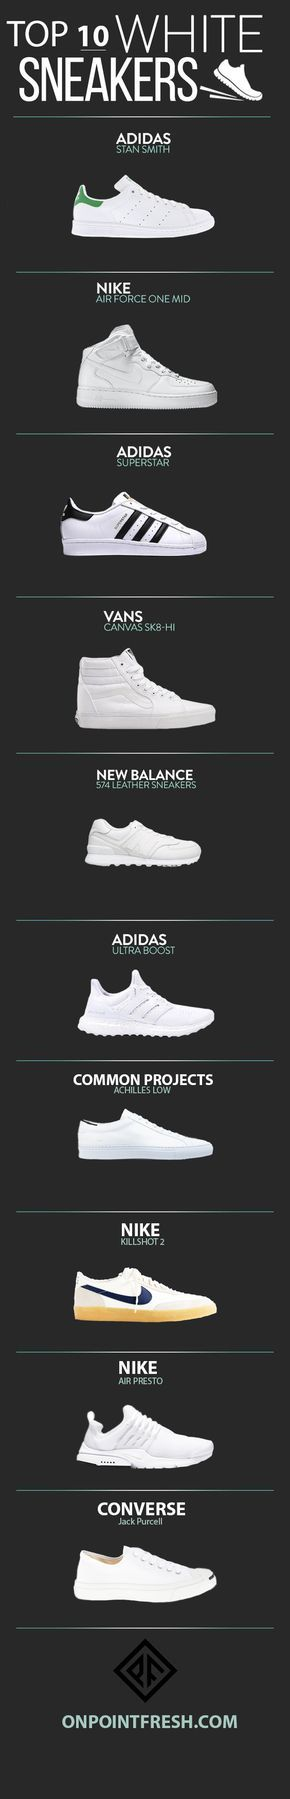 top-10-white-sneakers-infographic                                                                                                                                                                                 Más